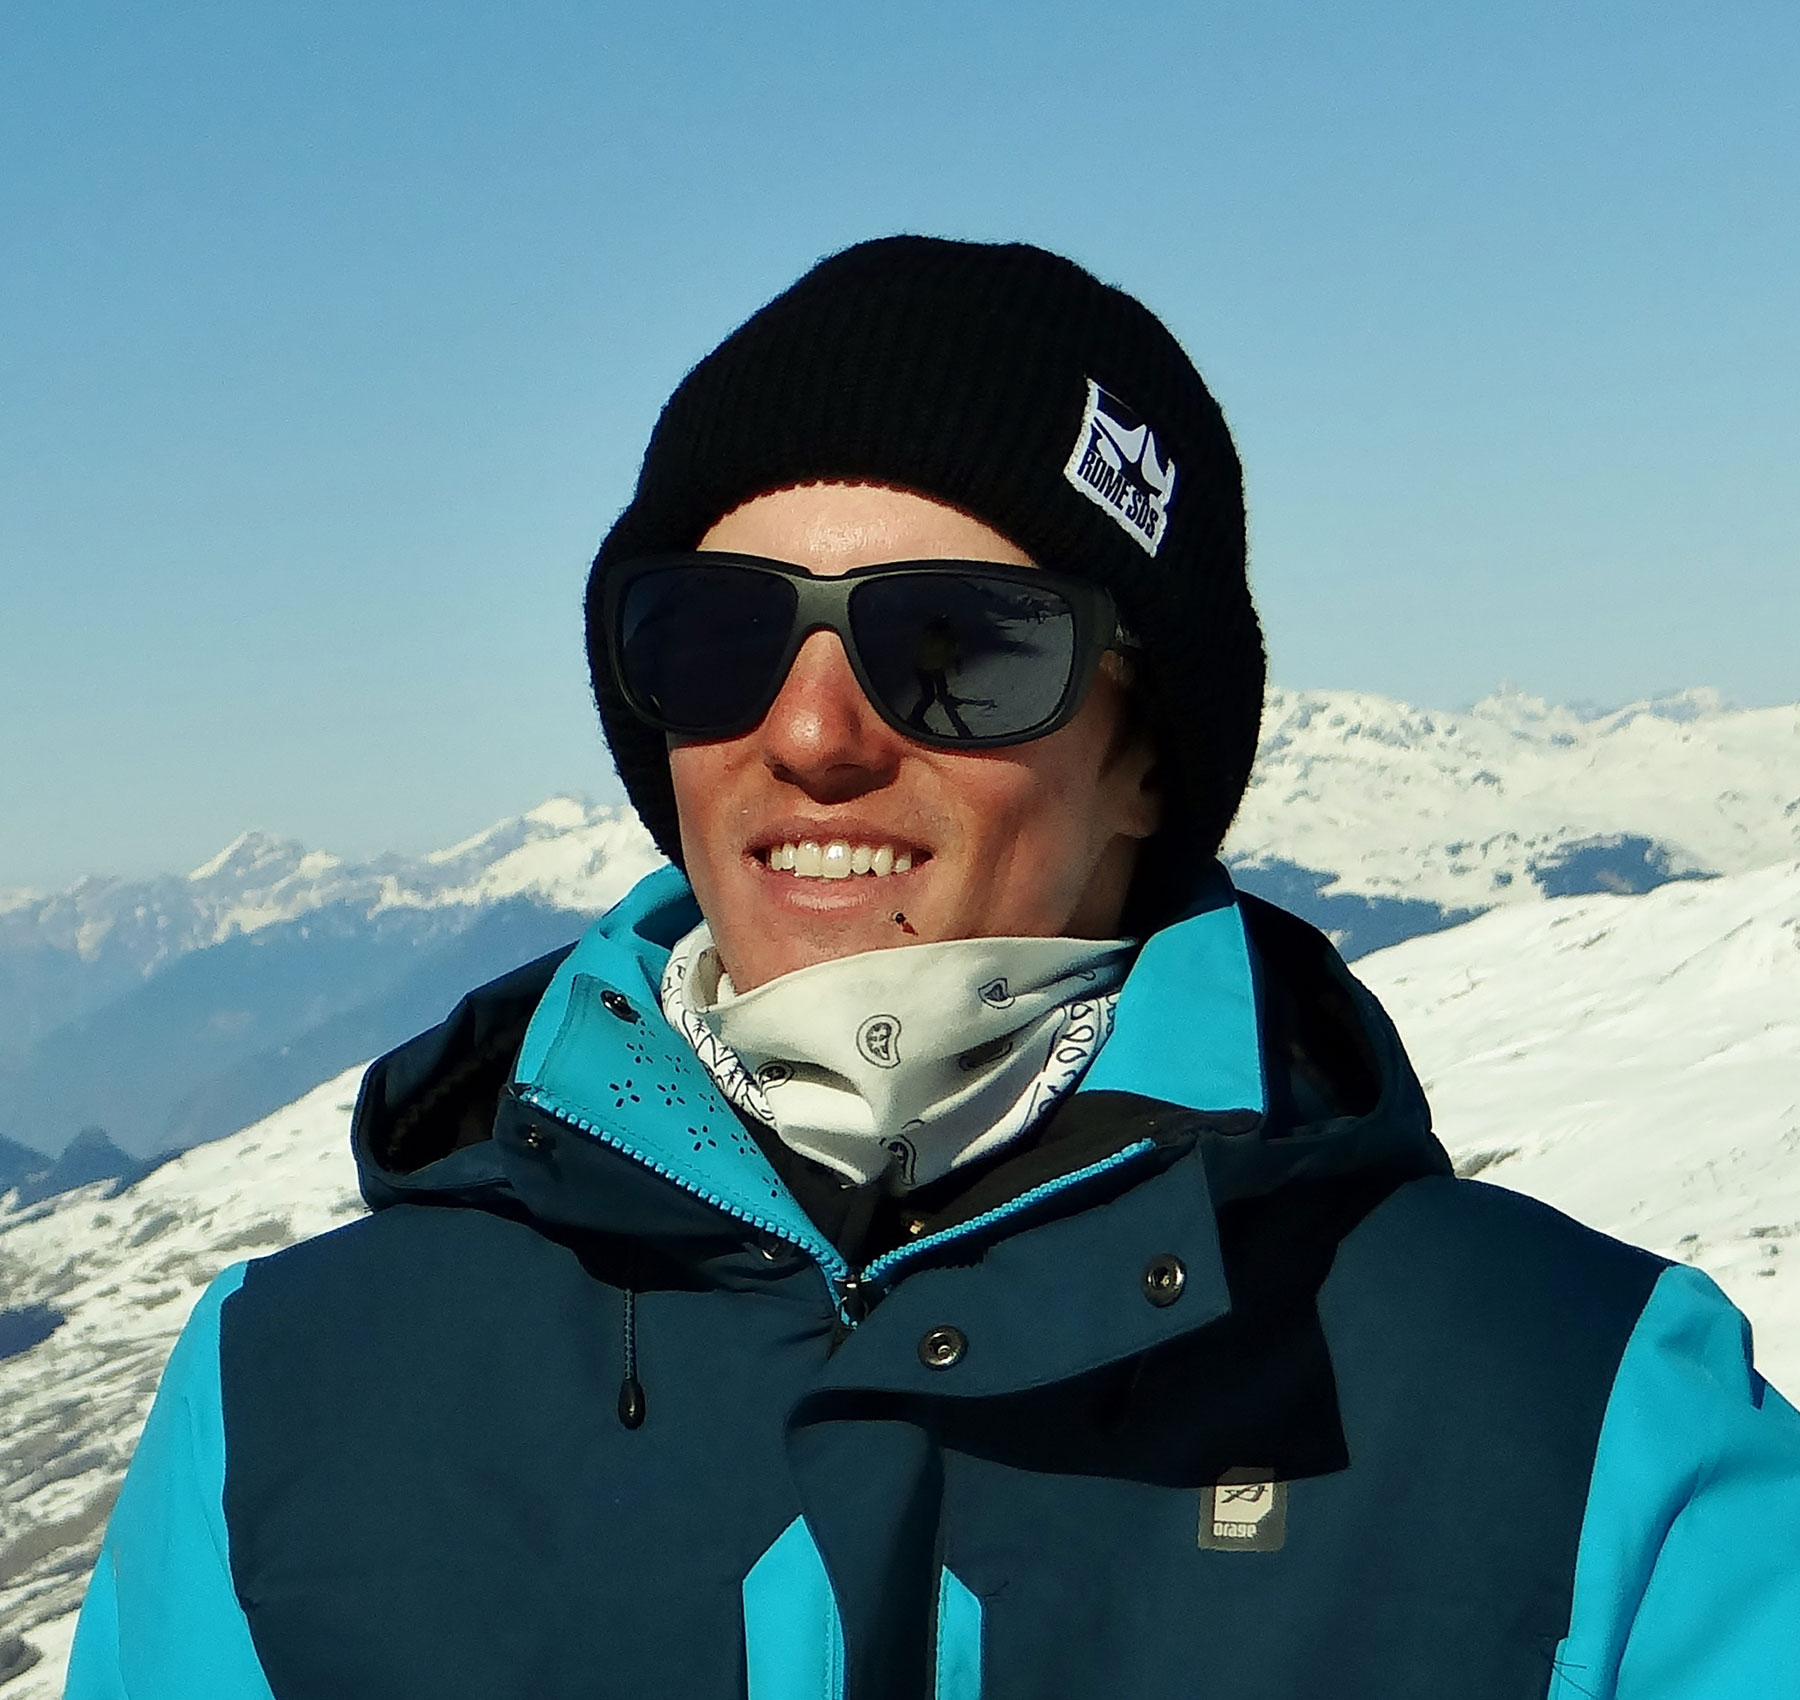 Jeremy-val-thorens-ski-instructor